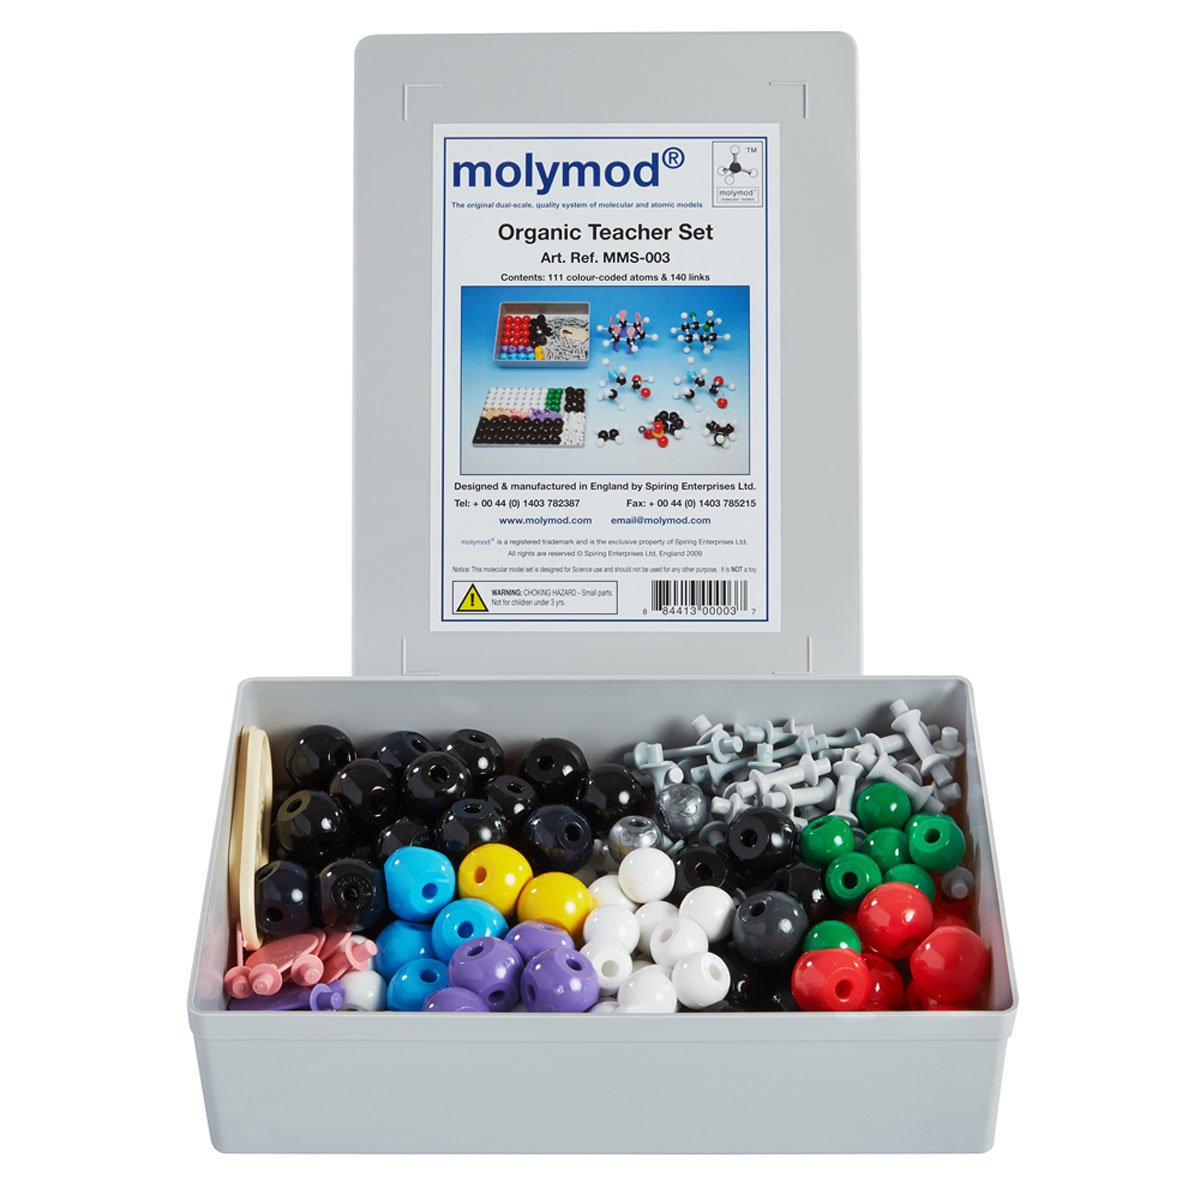 Molymod MMS-003 Organic Chemistry Molecular Model, Teacher Set (111 atom parts)